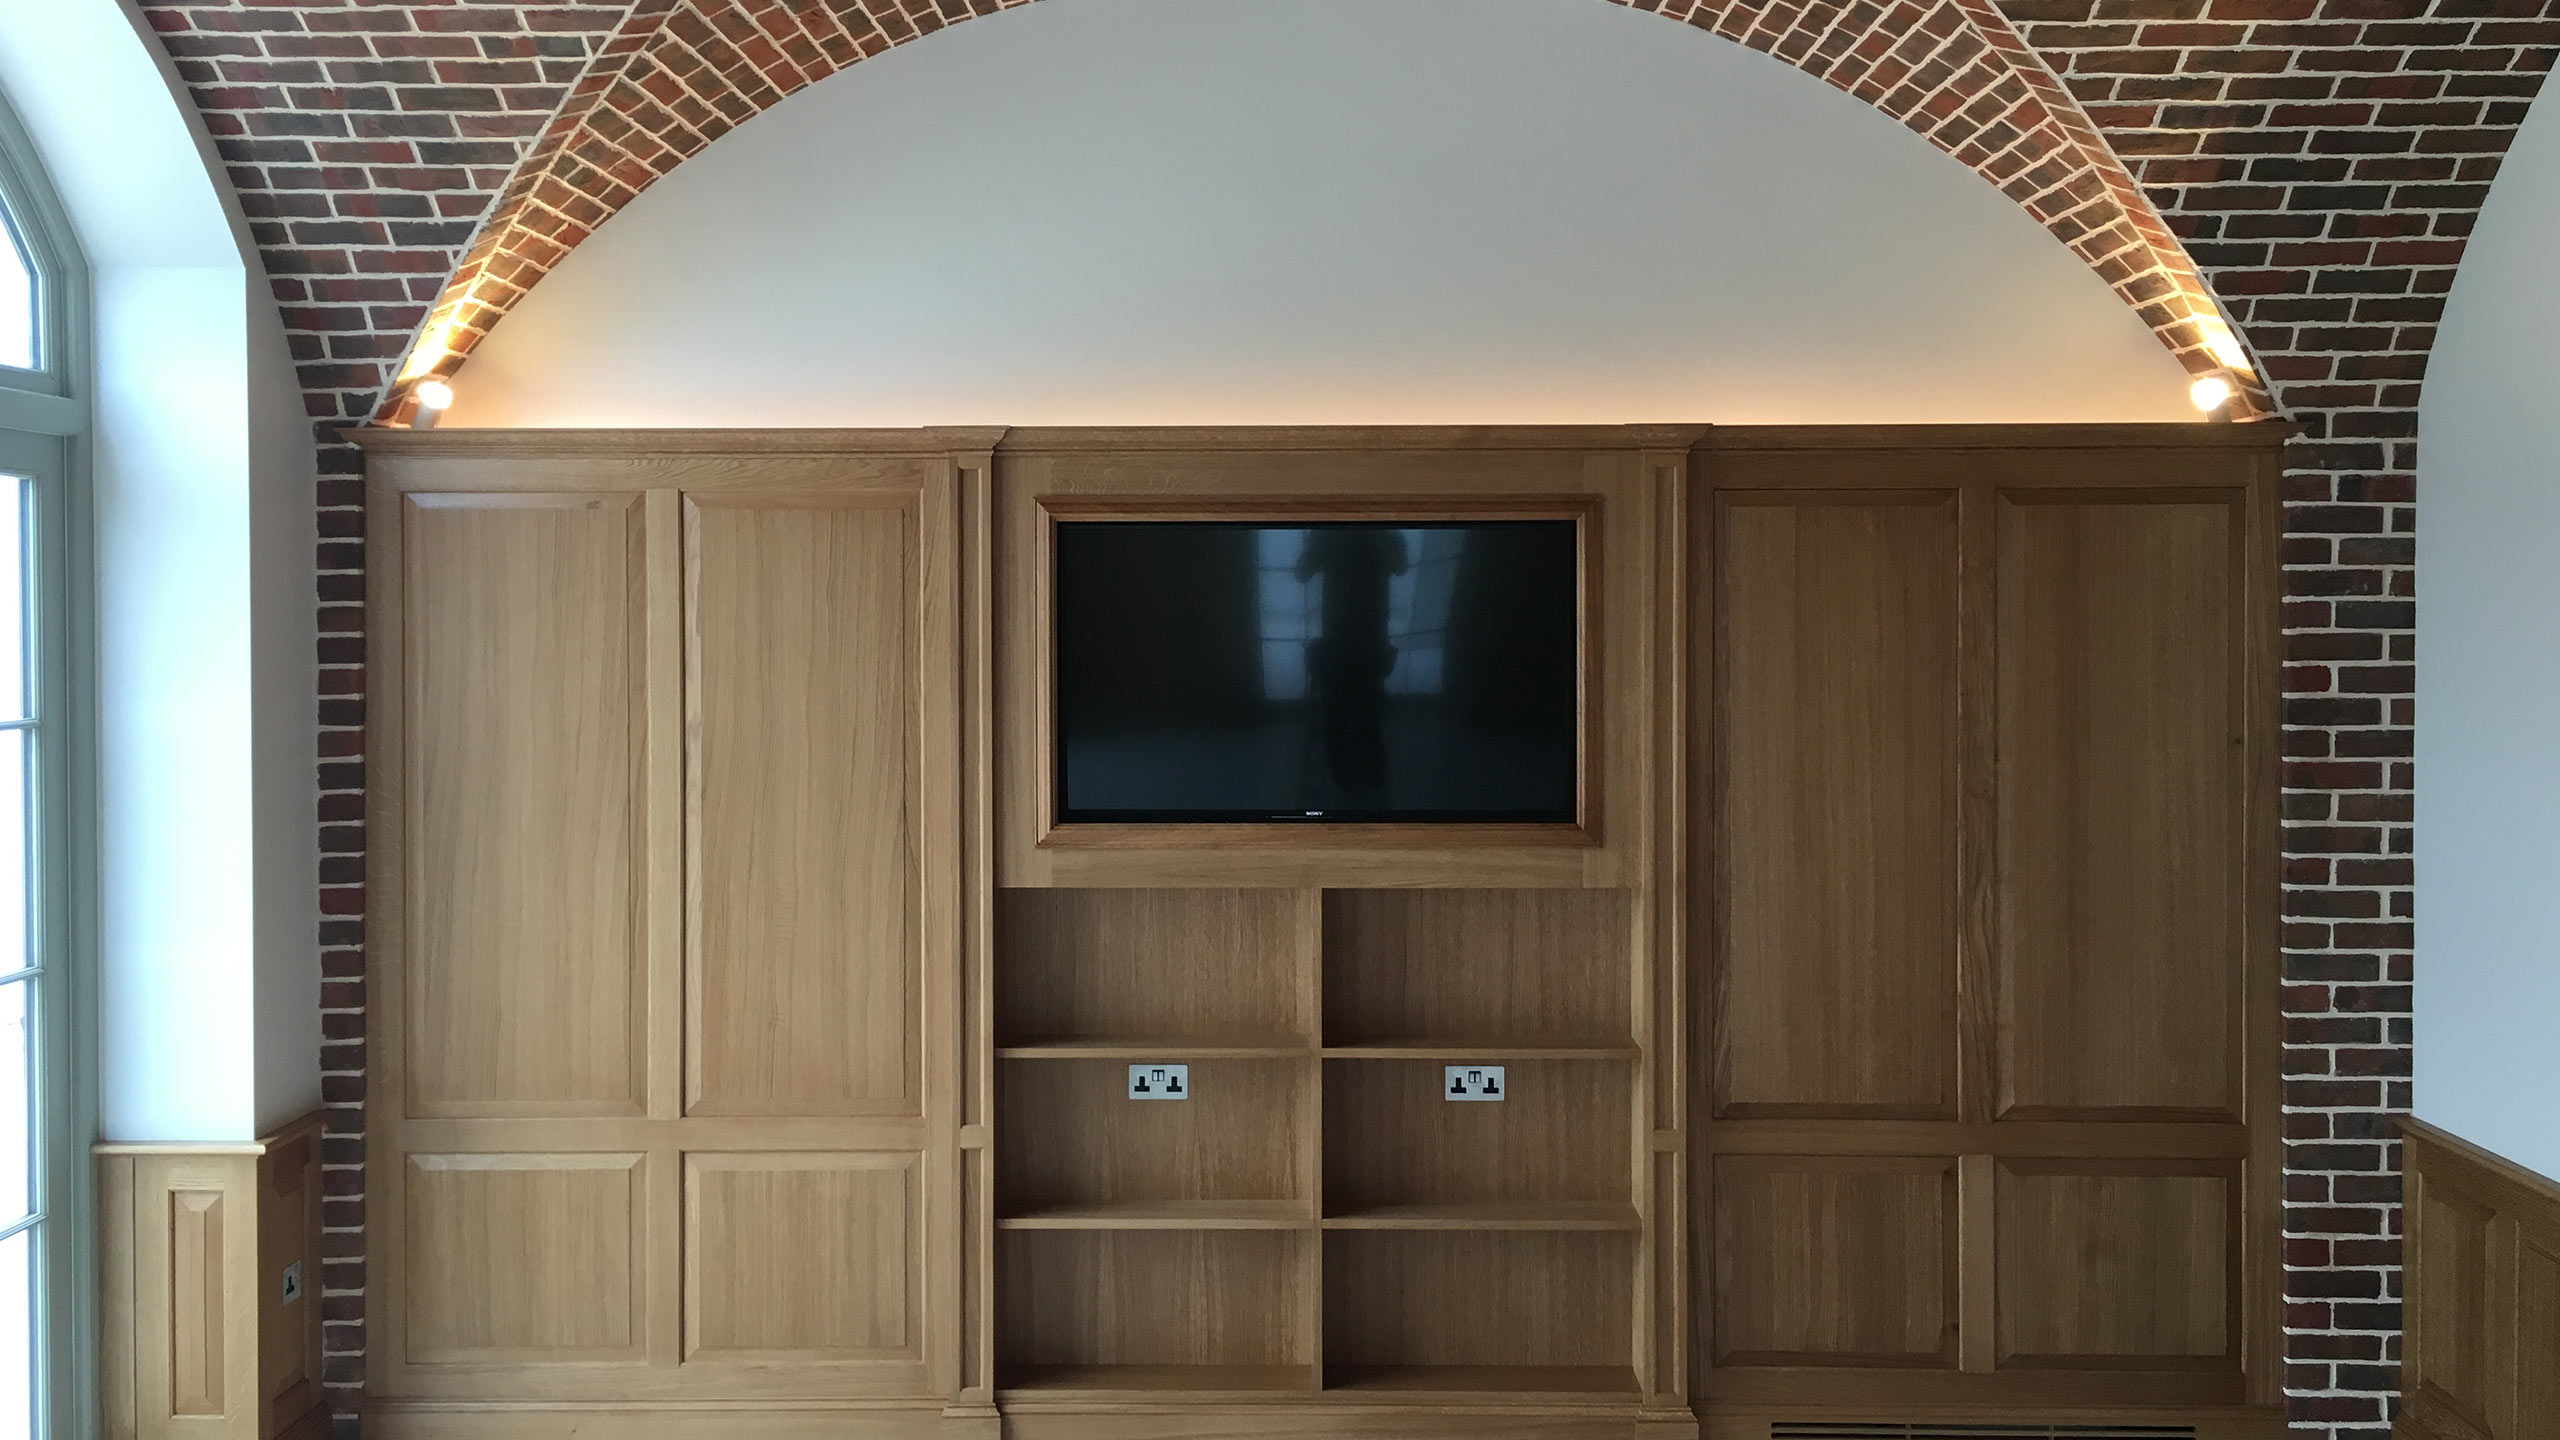 Joinery installation media unit by Neova Installation.